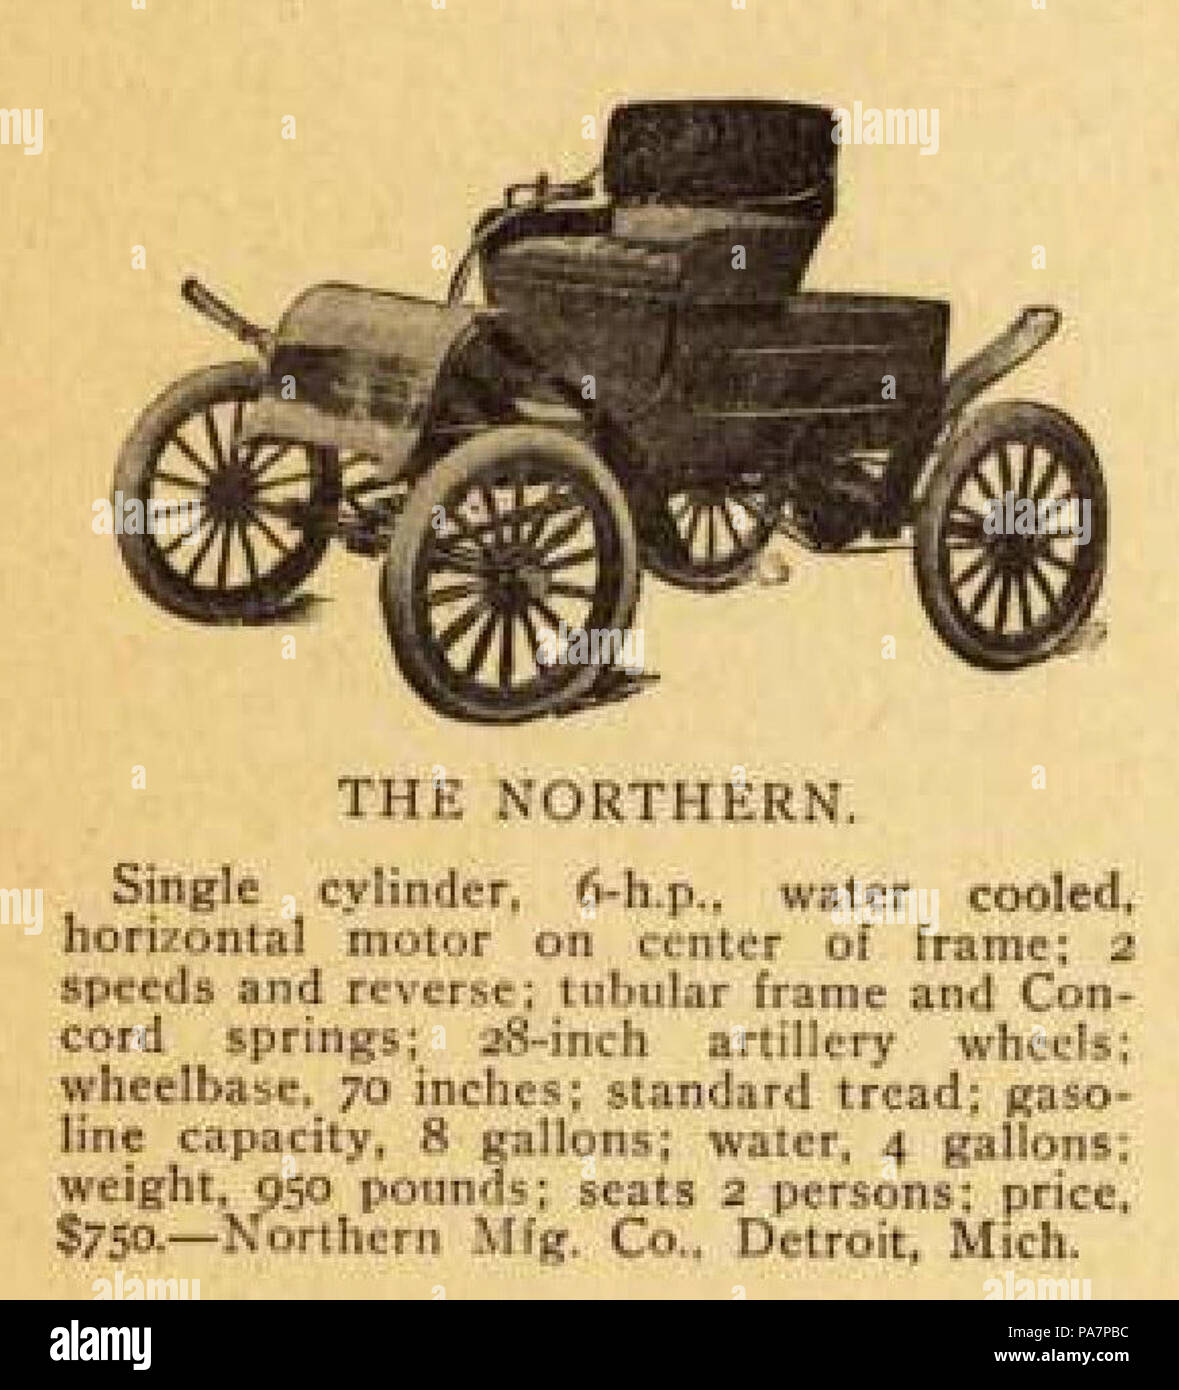 26 1904 Northern 6 HP Runabout - Stock Image